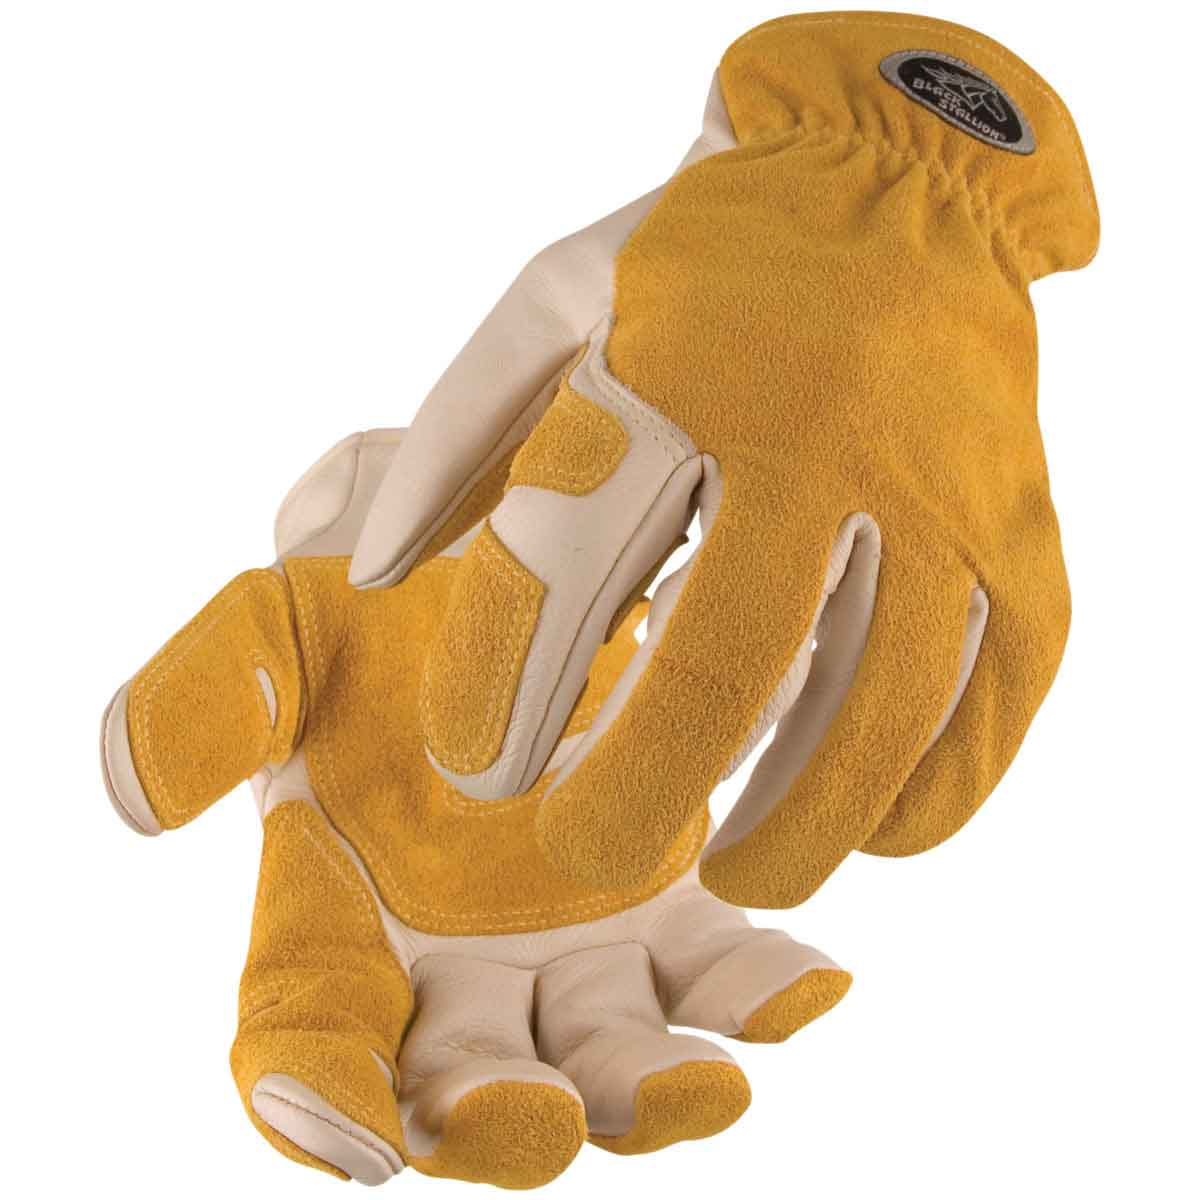 Black Stallion 97SW Versatile Grain Cowhide Drivers Glove with Reinforced Palm, X-Large